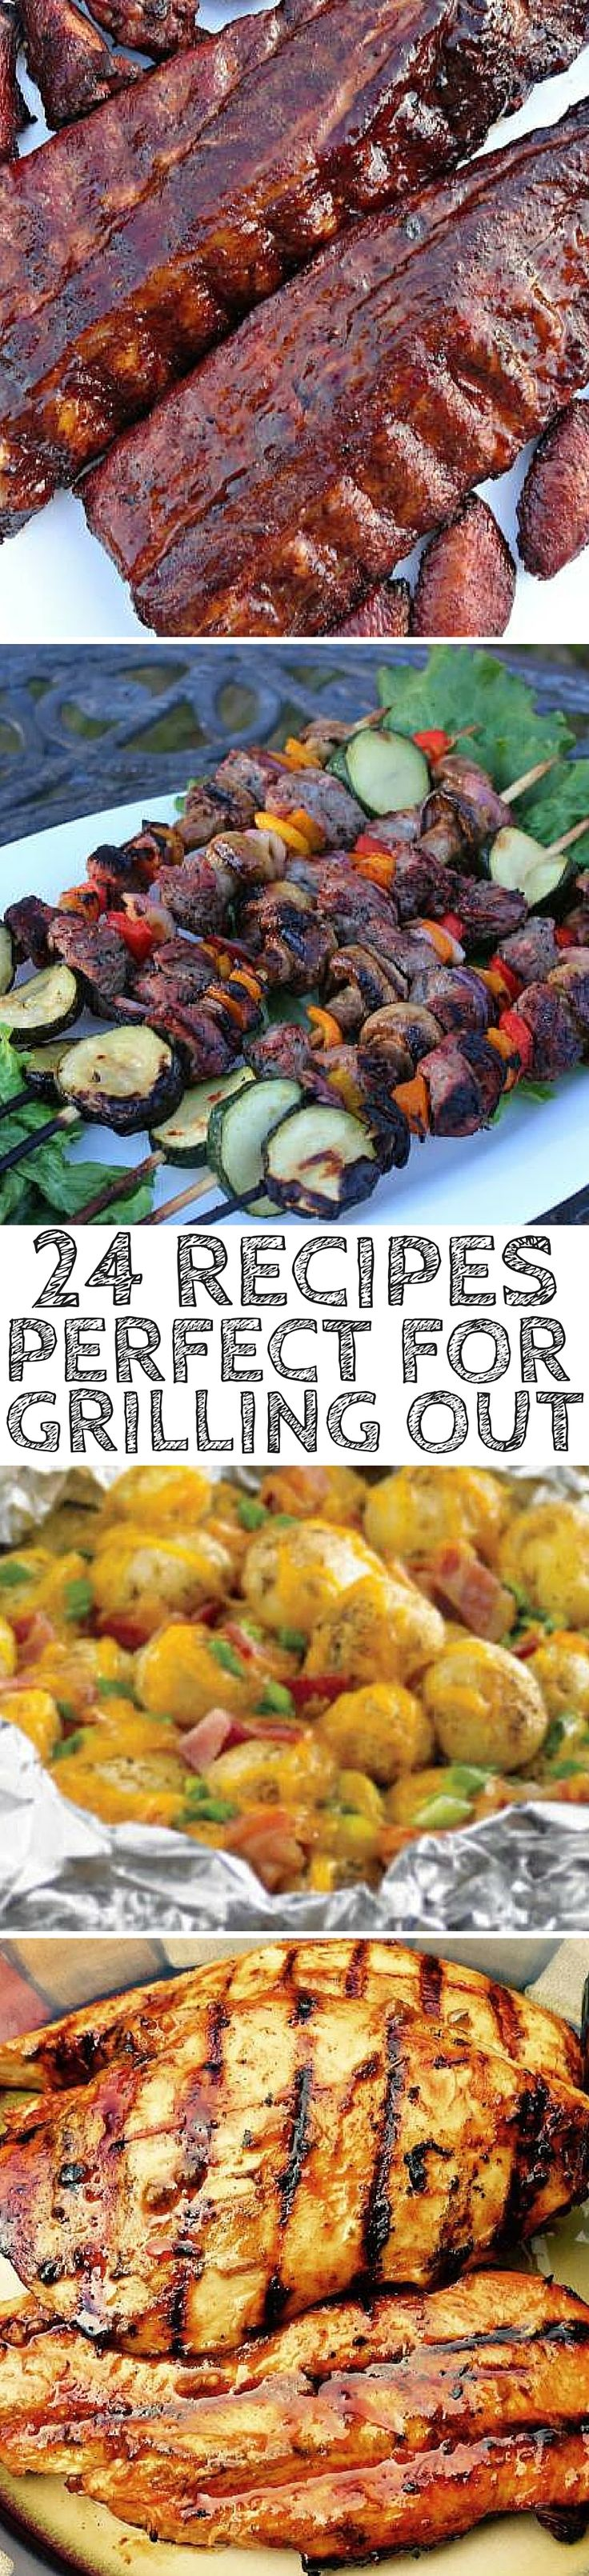 Grilling season is here! This is your one-stop shop for all the grilling recipes you need to make your Spring and Summer cook outs absolutely awesome!